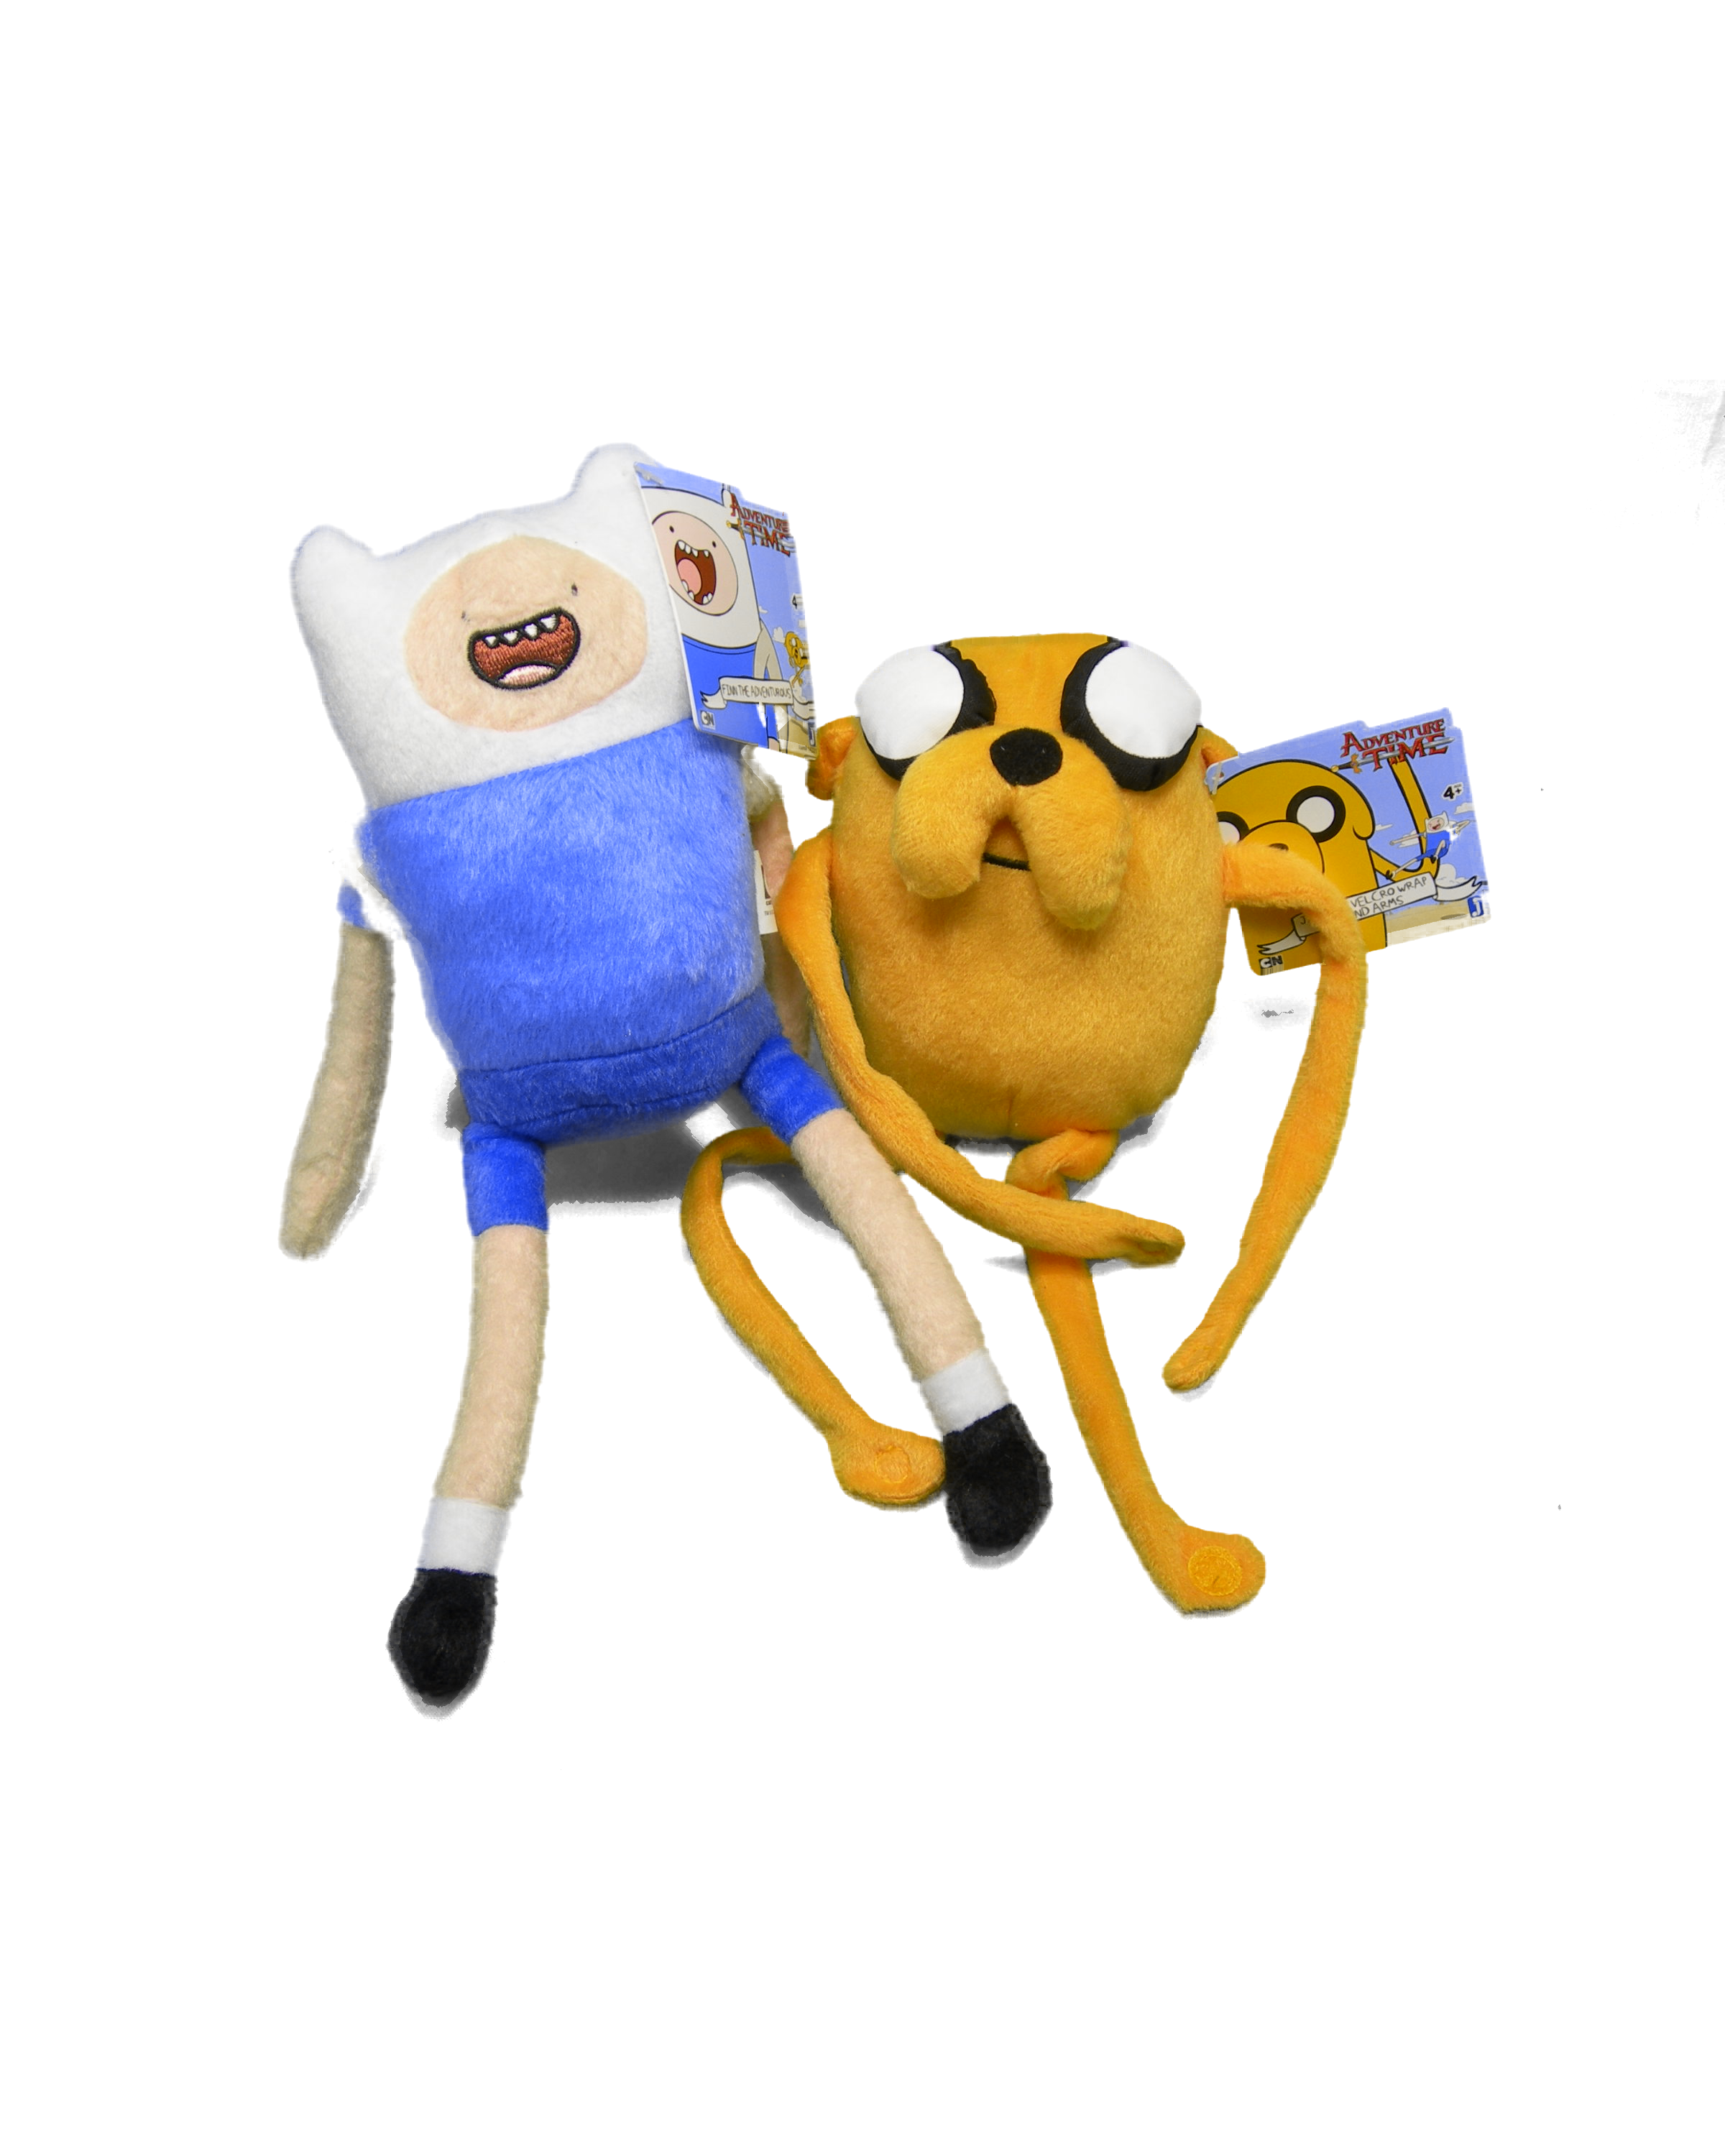 Adventure Time Finn & Jake coppia peluche 25 cm Originale